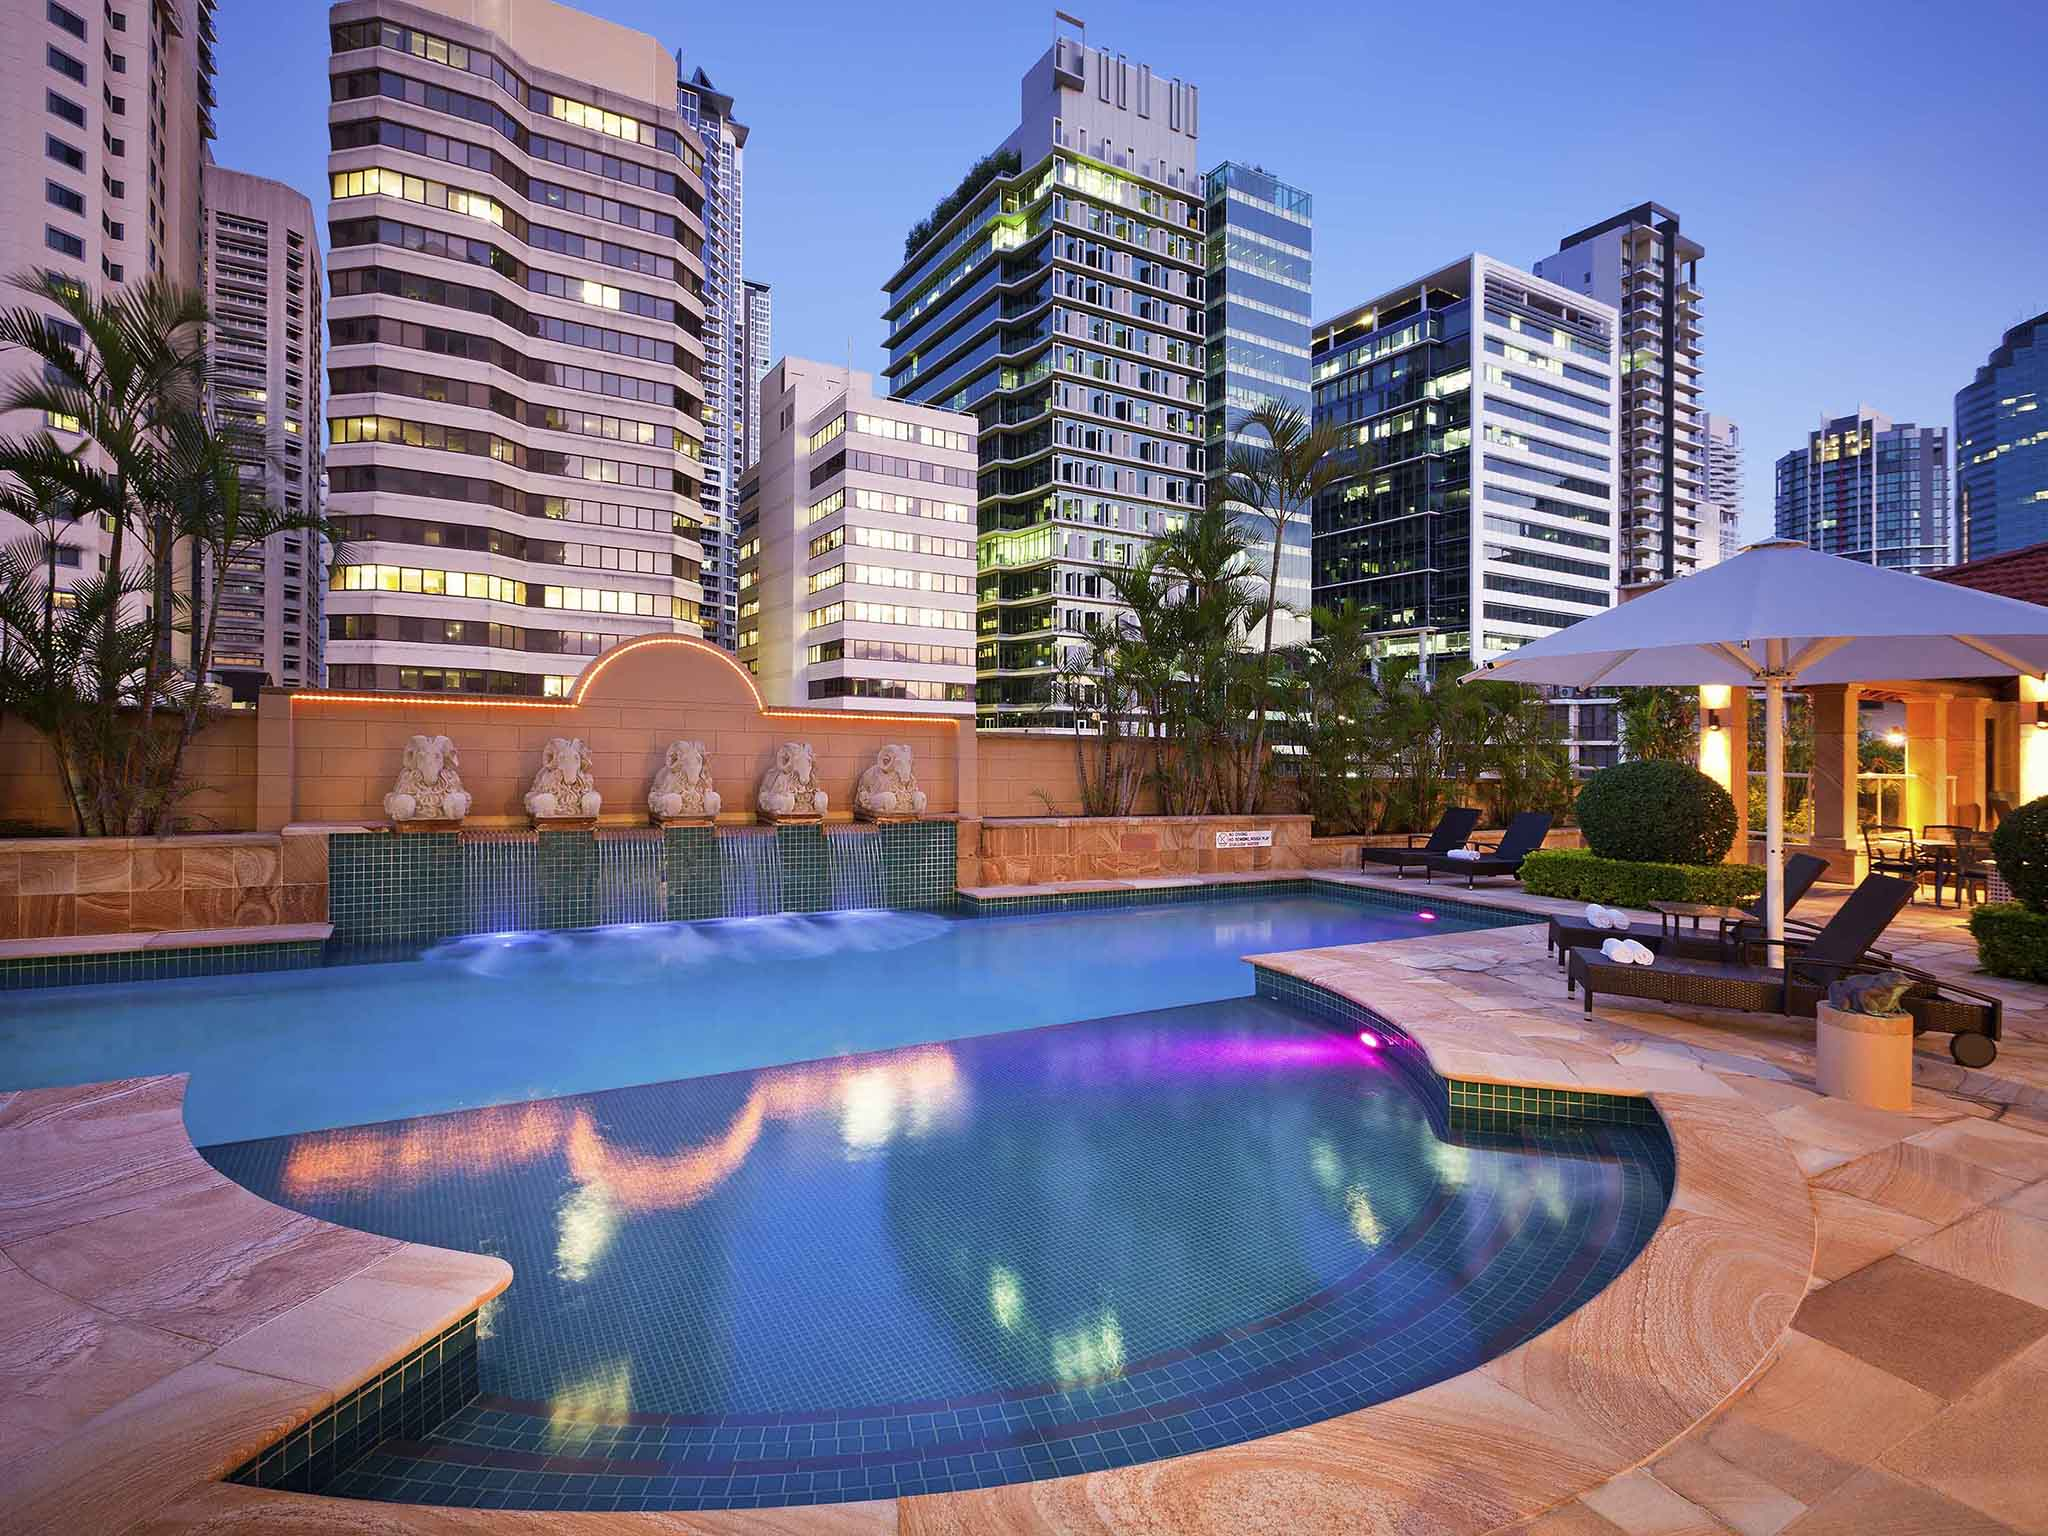 Hotel – The Sebel Quay West Brisbane